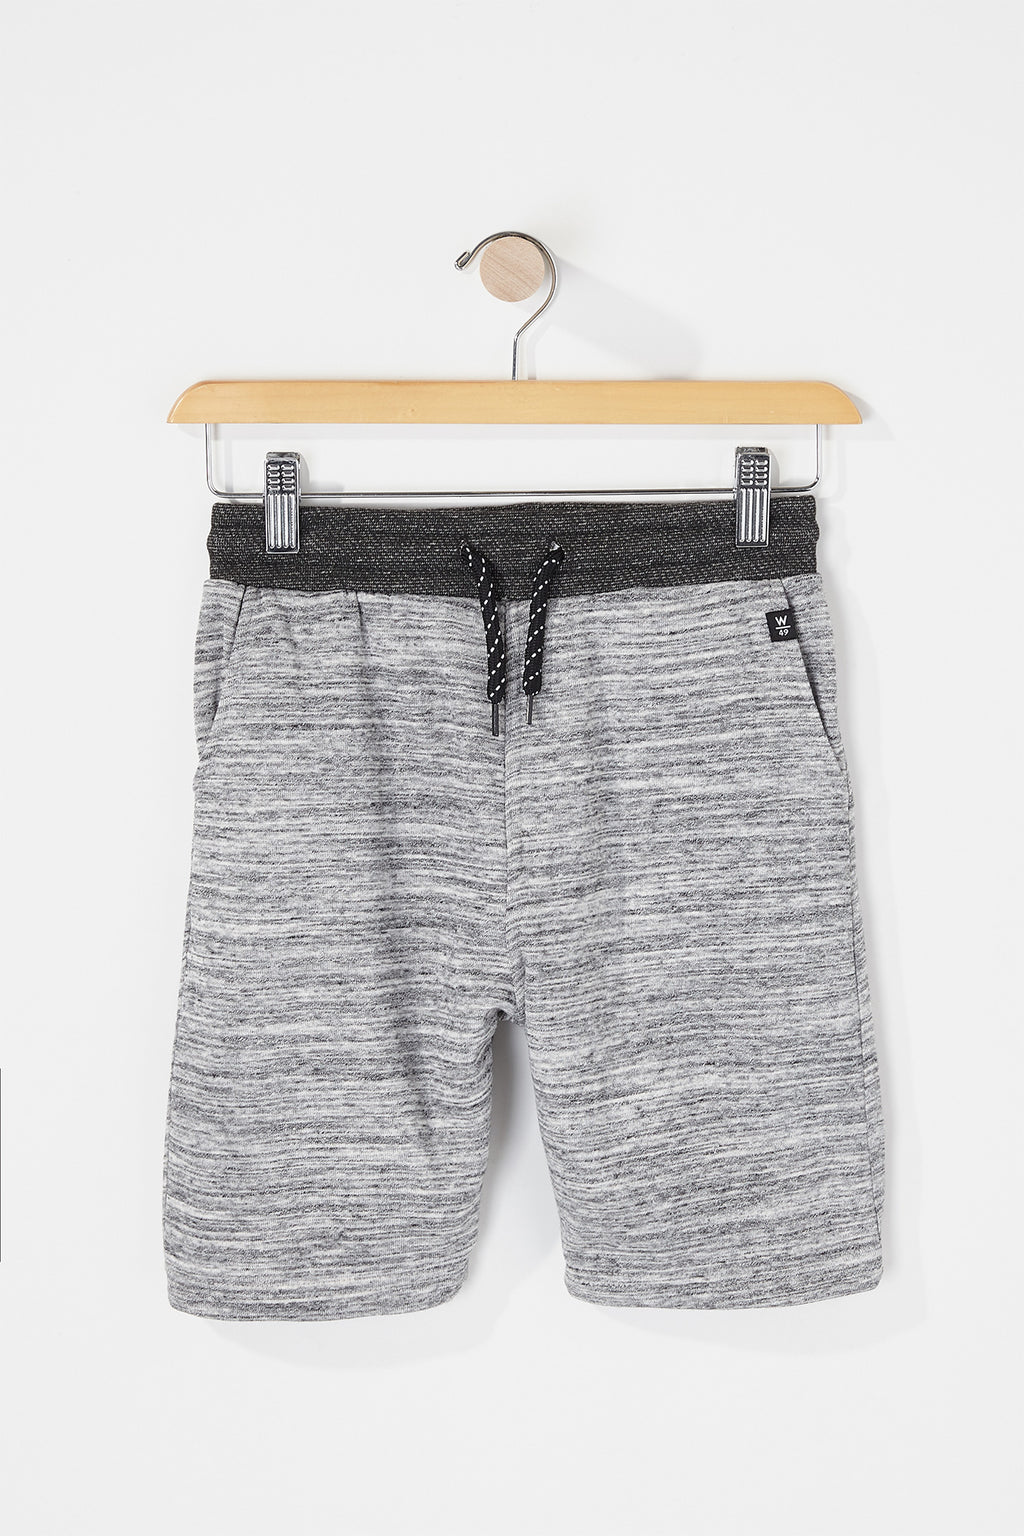 West49 Boys Fleece Shorts